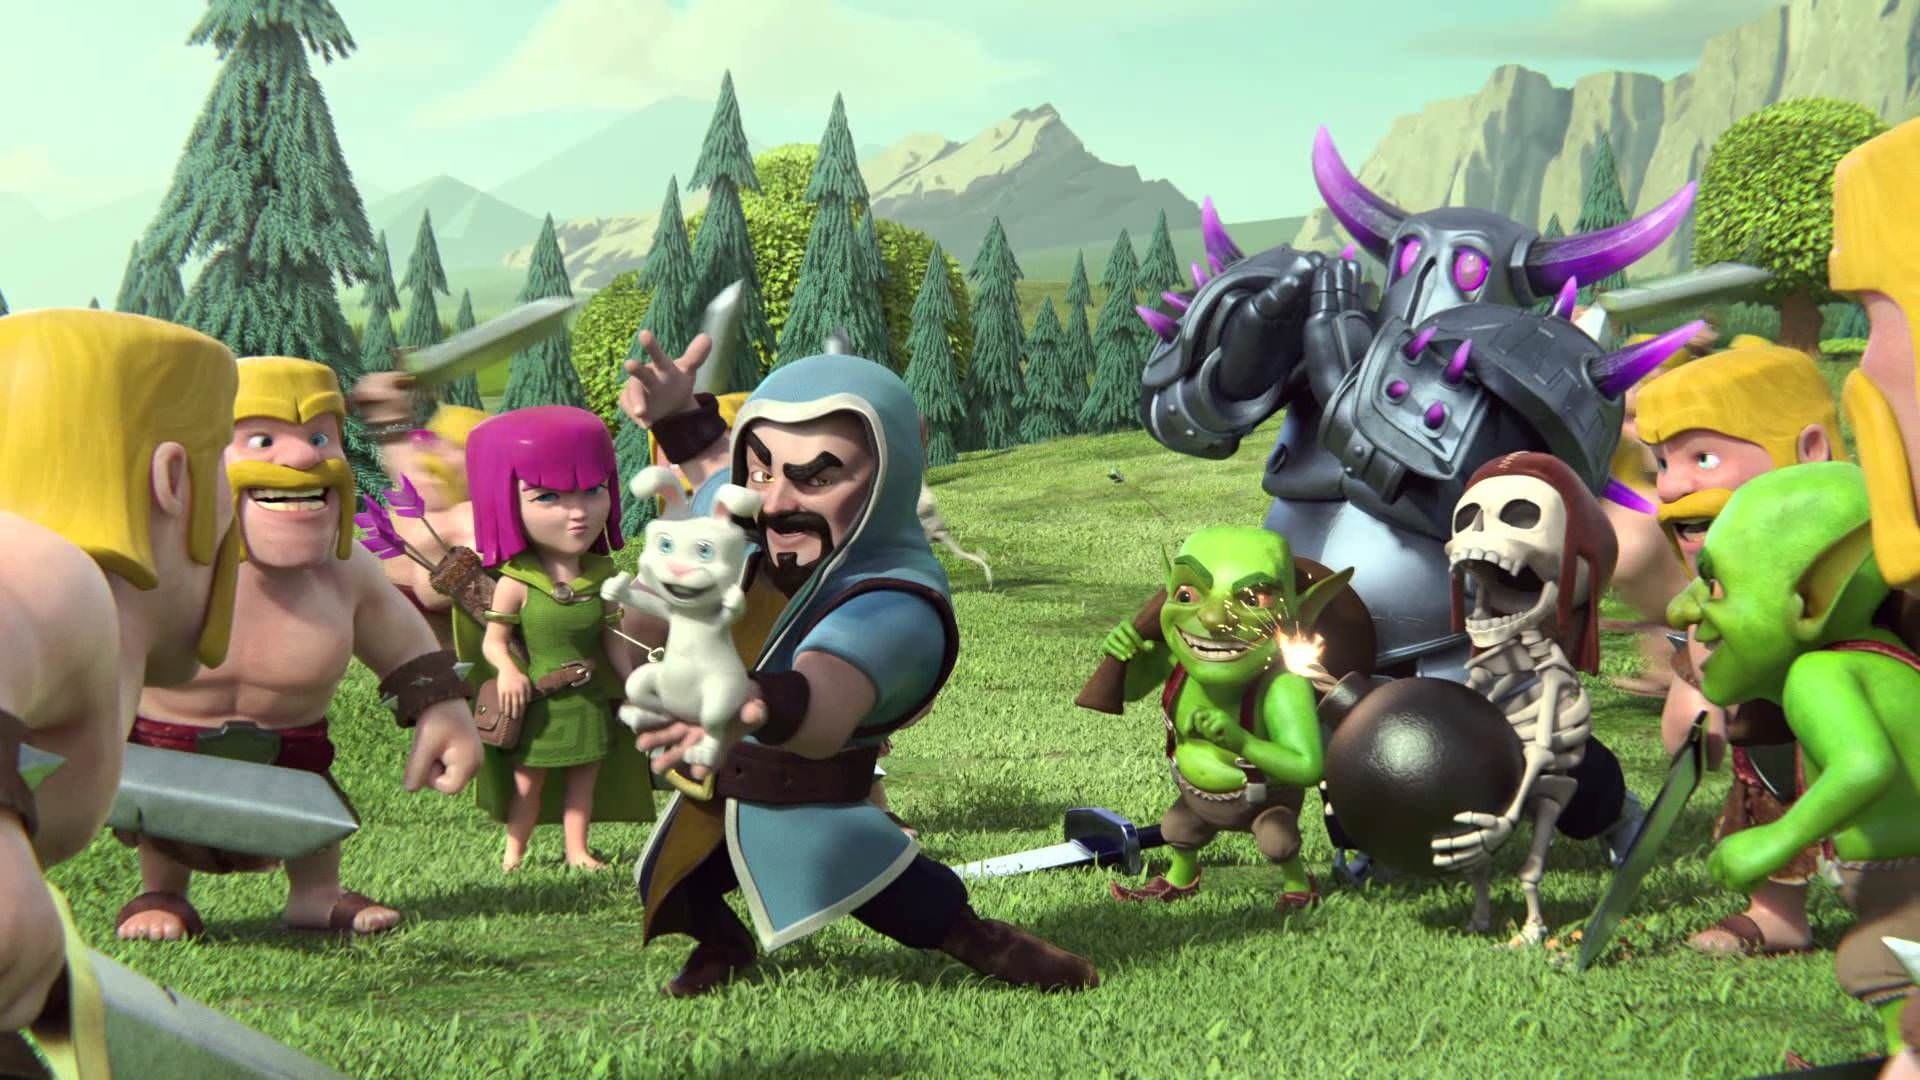 widescreen clash of clans hd full pictures on wallpaper cartoon coc